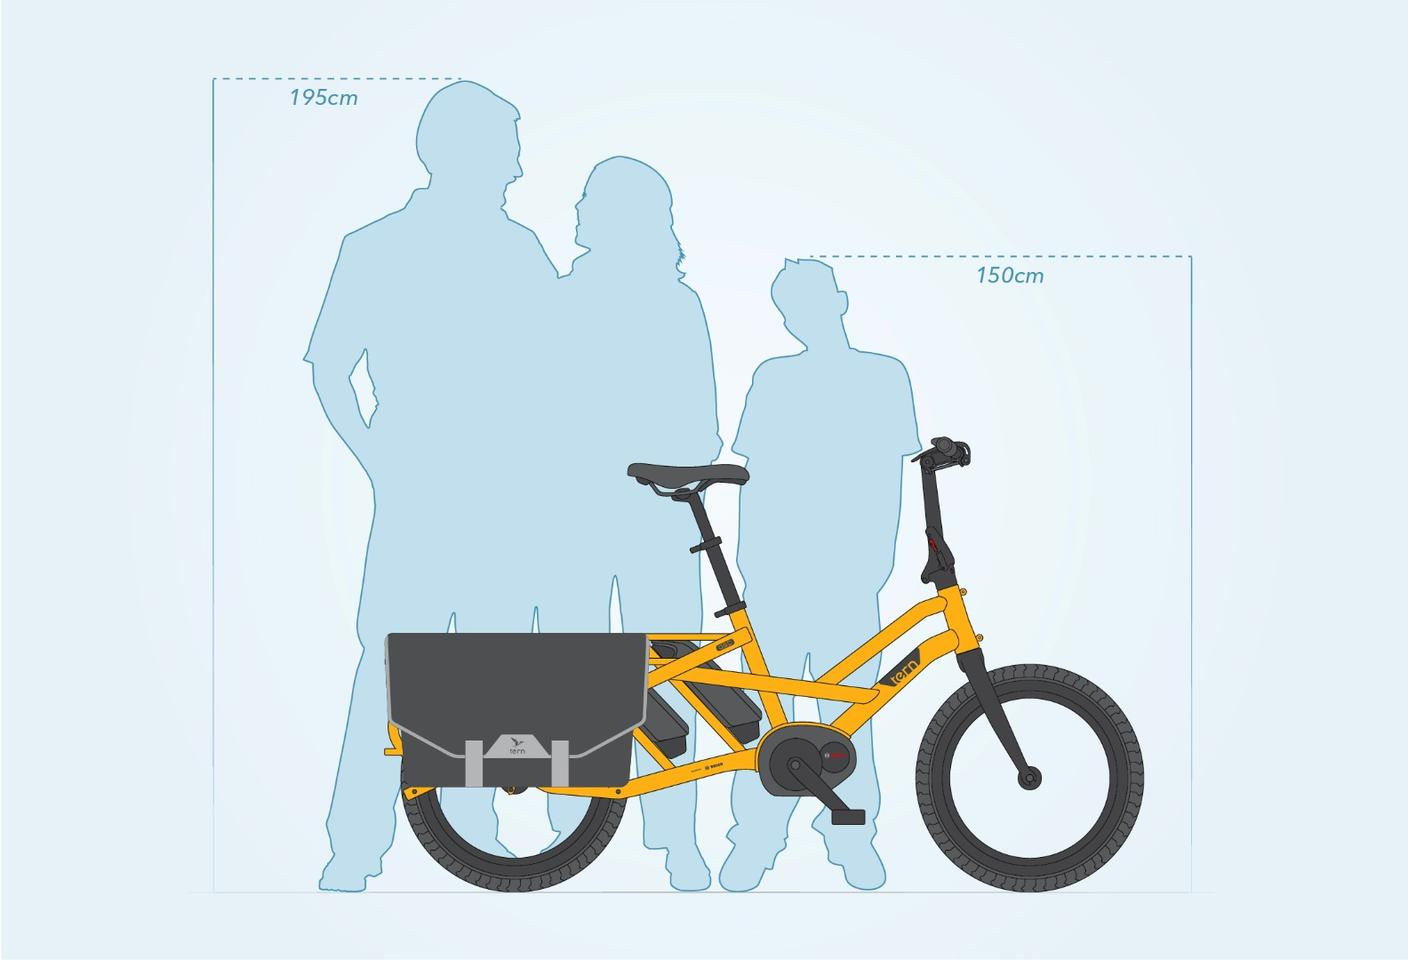 The GSD is designed to fit riders between 4.9 and 6.4 feet (150 to 195 cm) tall